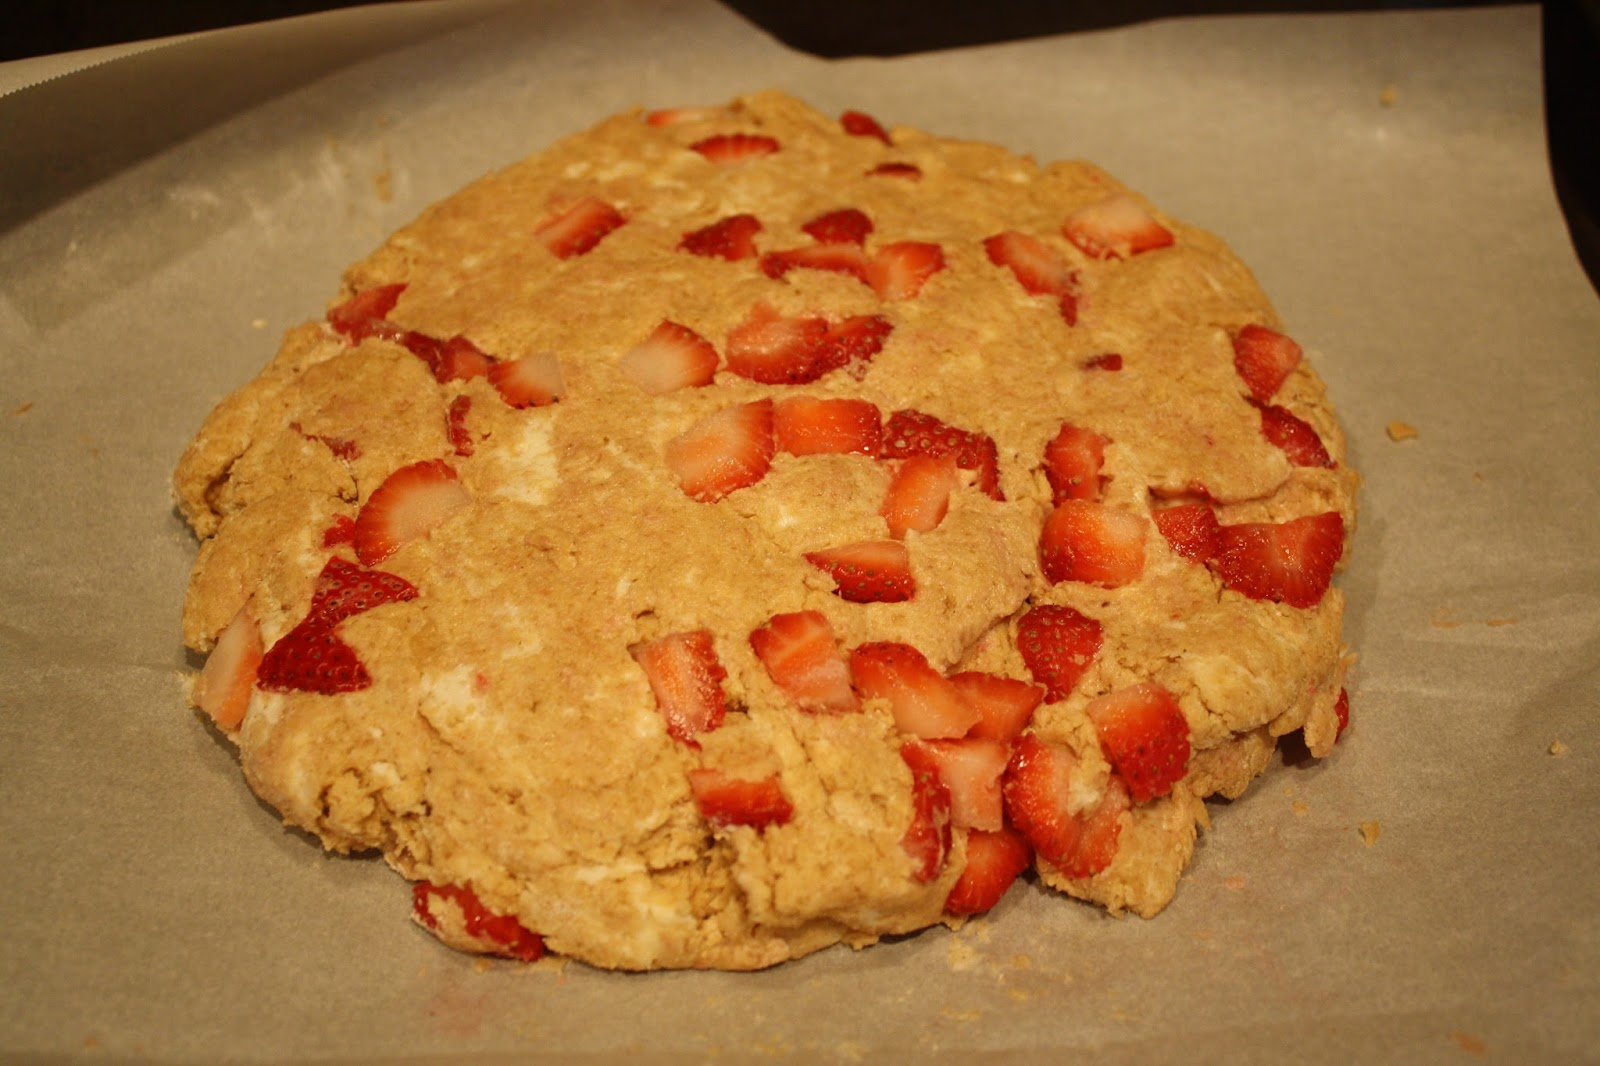 ... -Free Girl: Strawberry-Sour Cream Scones with Brown Sugar Crumble